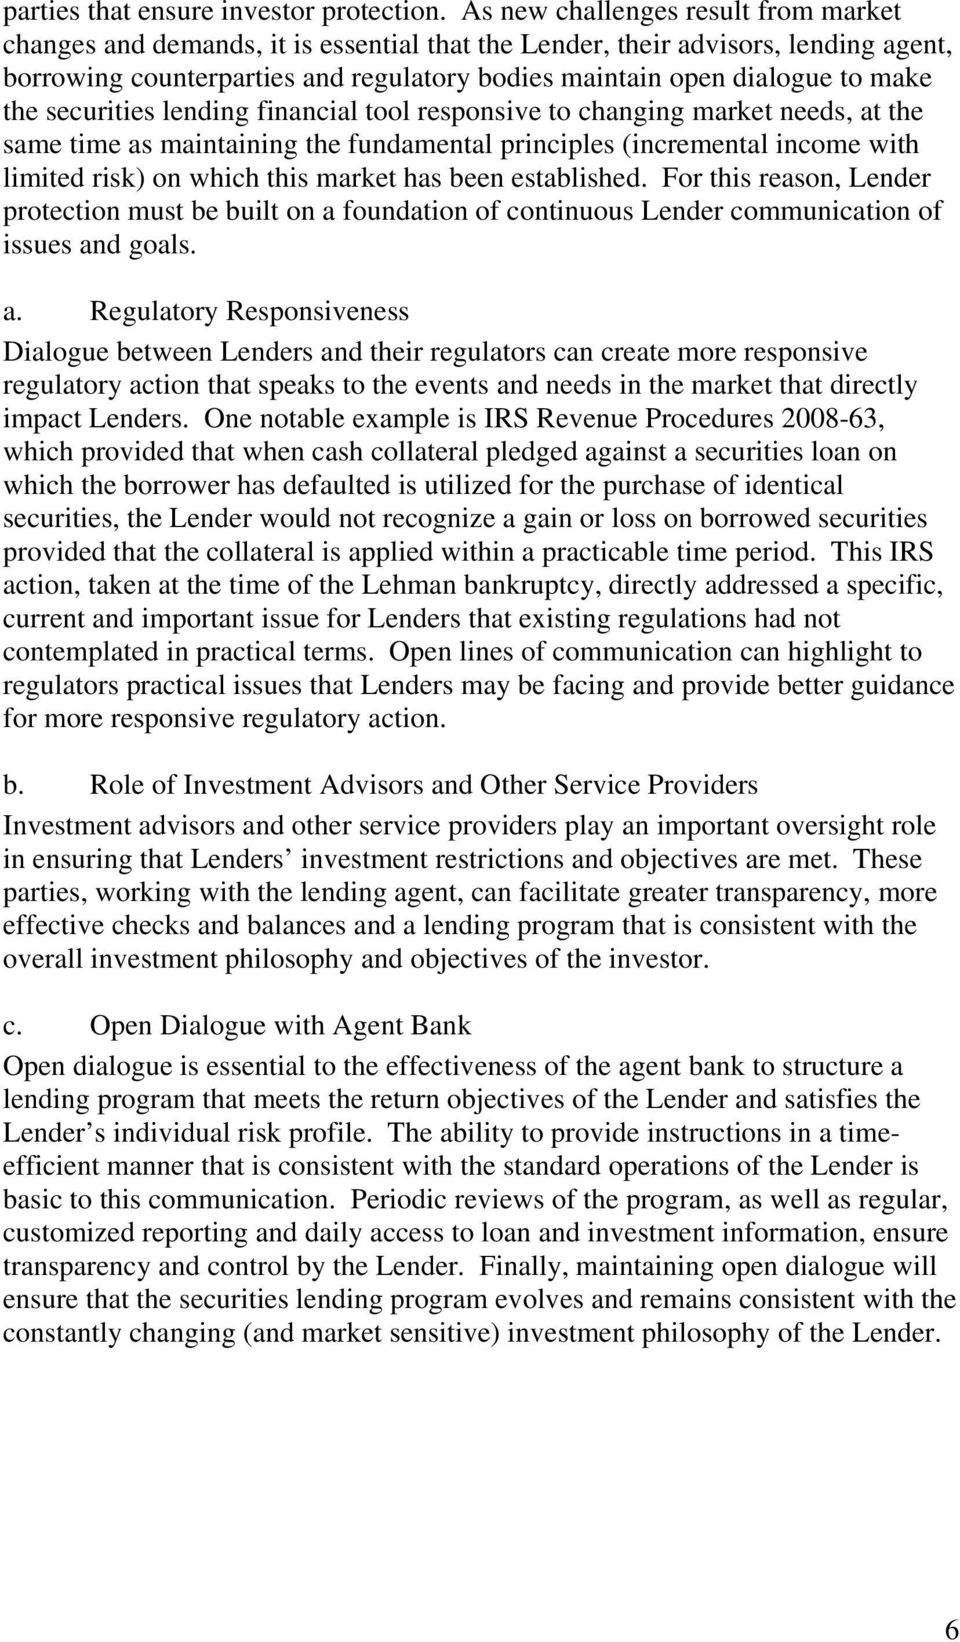 the securities lending financial tool responsive to changing market needs, at the same time as maintaining the fundamental principles (incremental income with limited risk) on which this market has